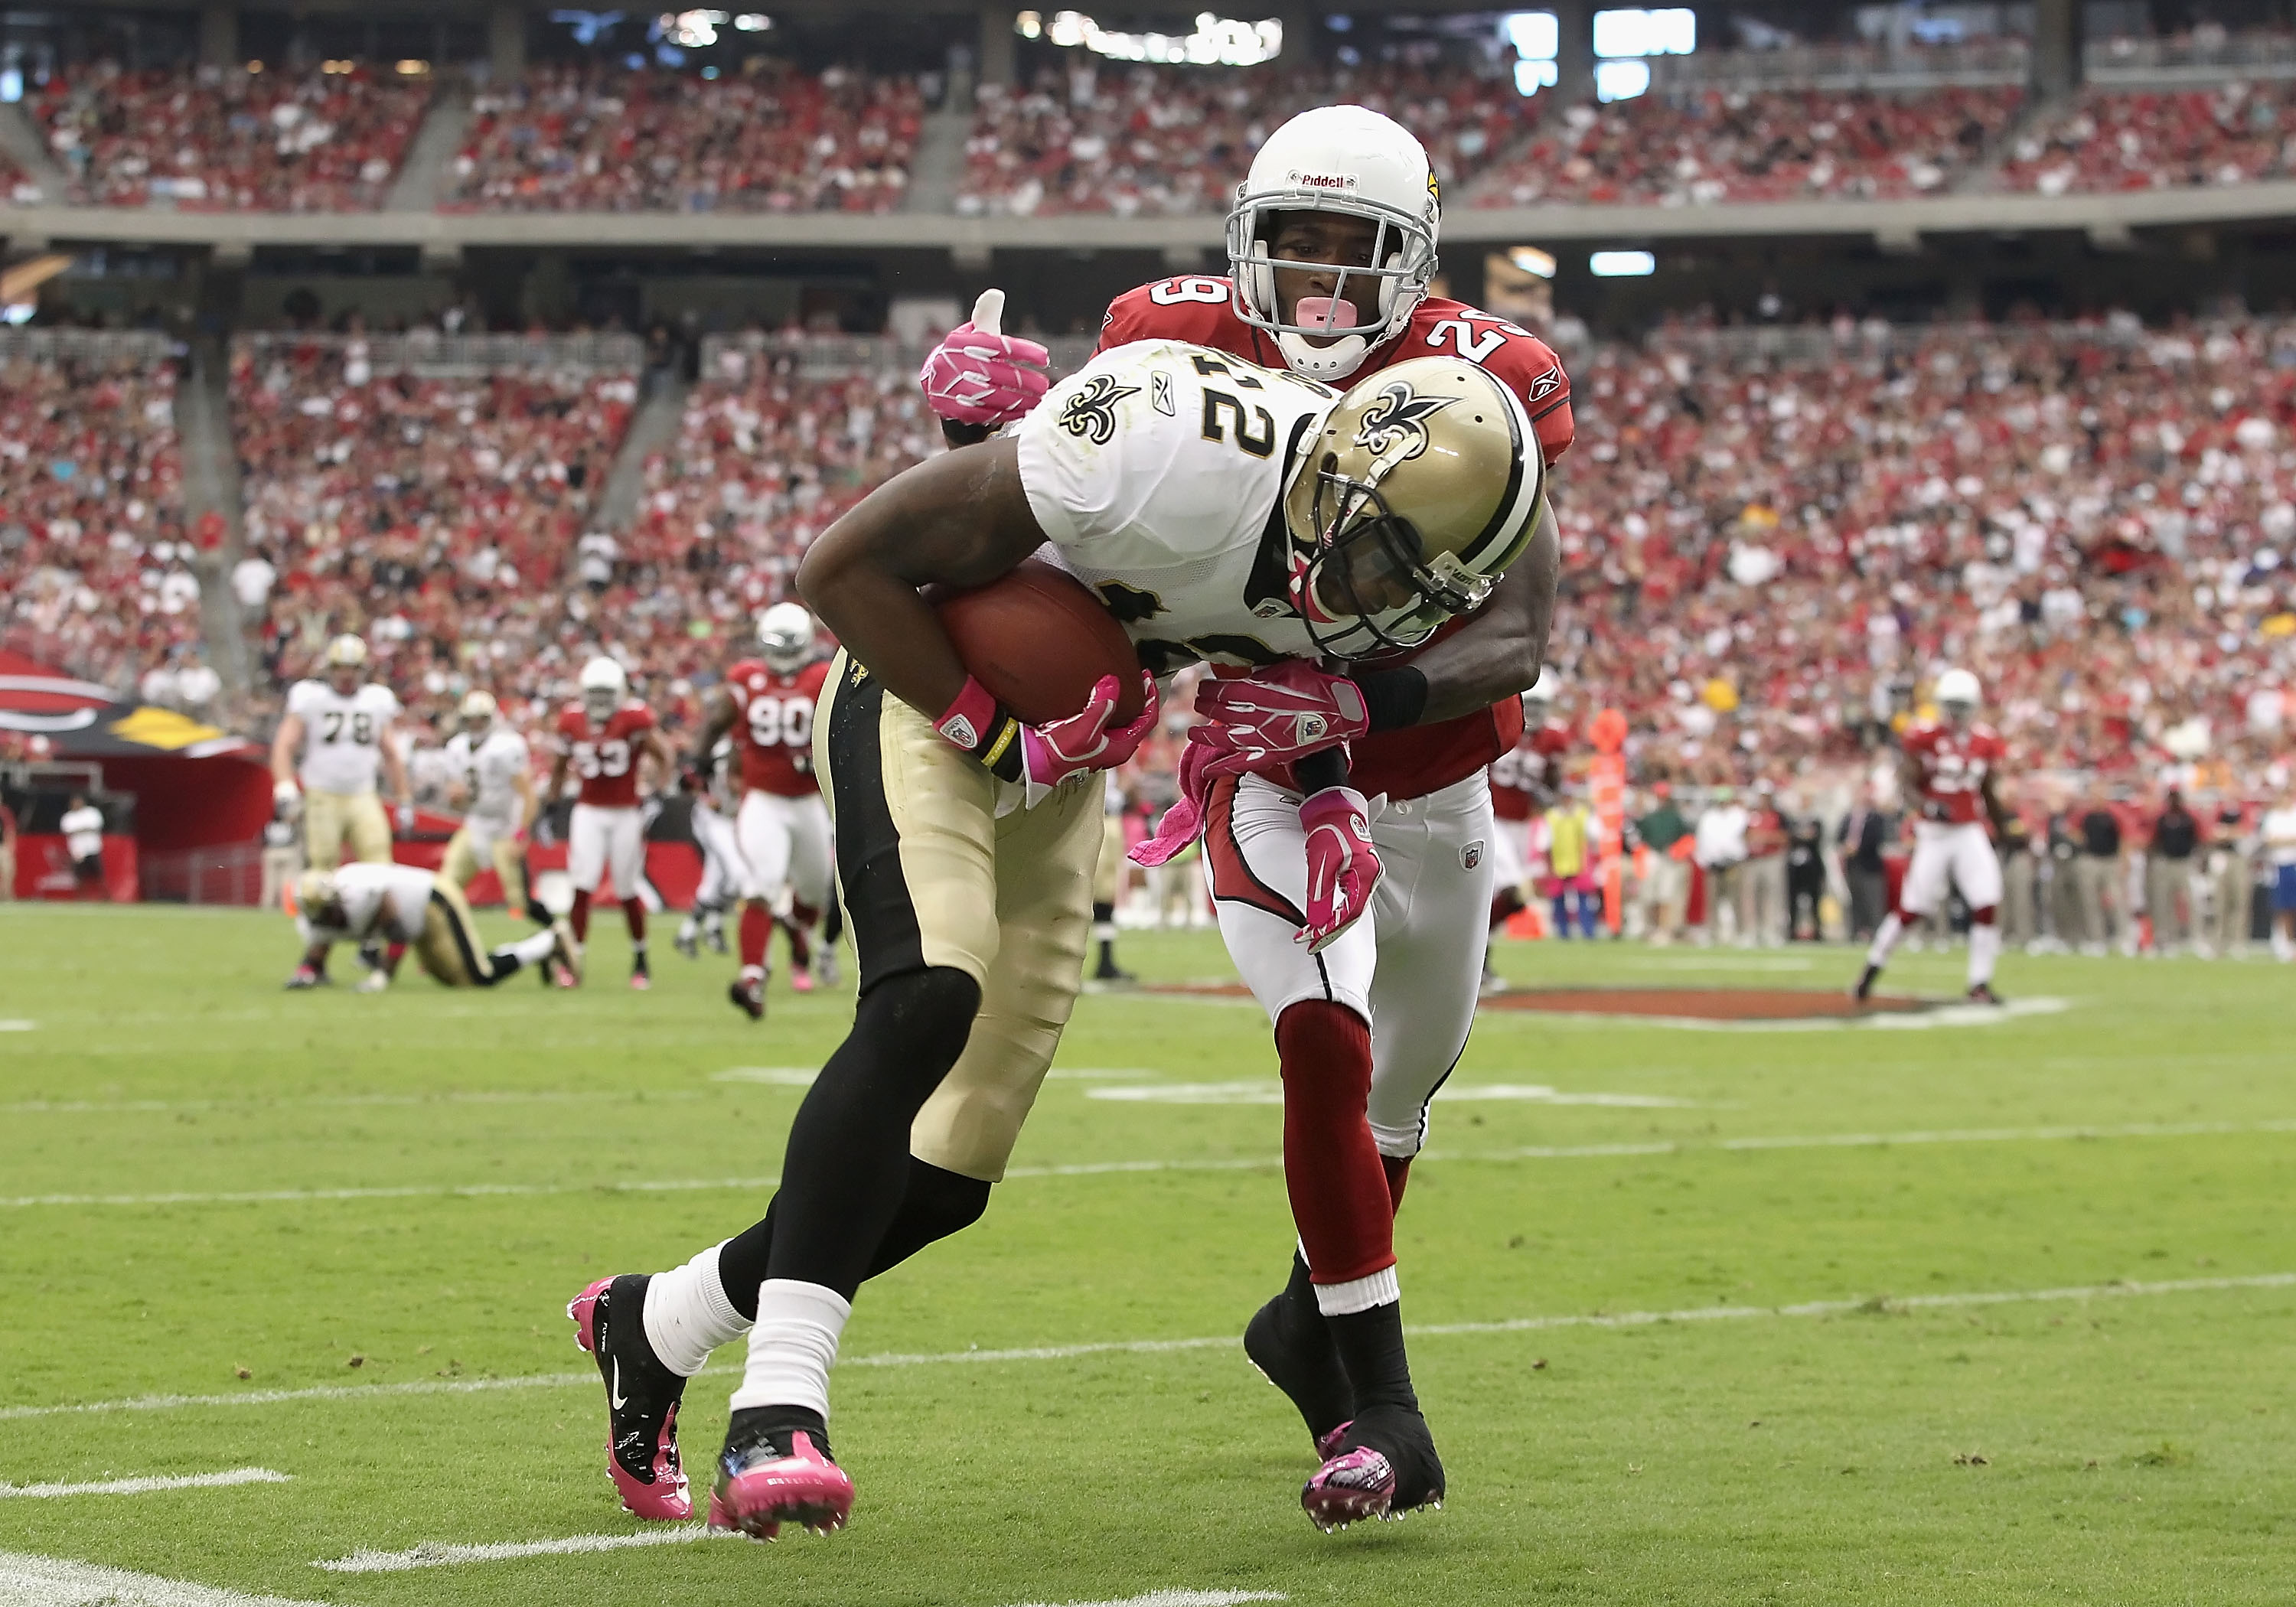 GLENDALE, AZ - OCTOBER 10:  Wide receiver Marques Colston #12 of the New Orleans Saints is tackled by Dominique Rodgers-Cromartie #29 of the Arizona Cardinals after a reception during the first quarter of the NFL game at the University of Phoenix Stadium